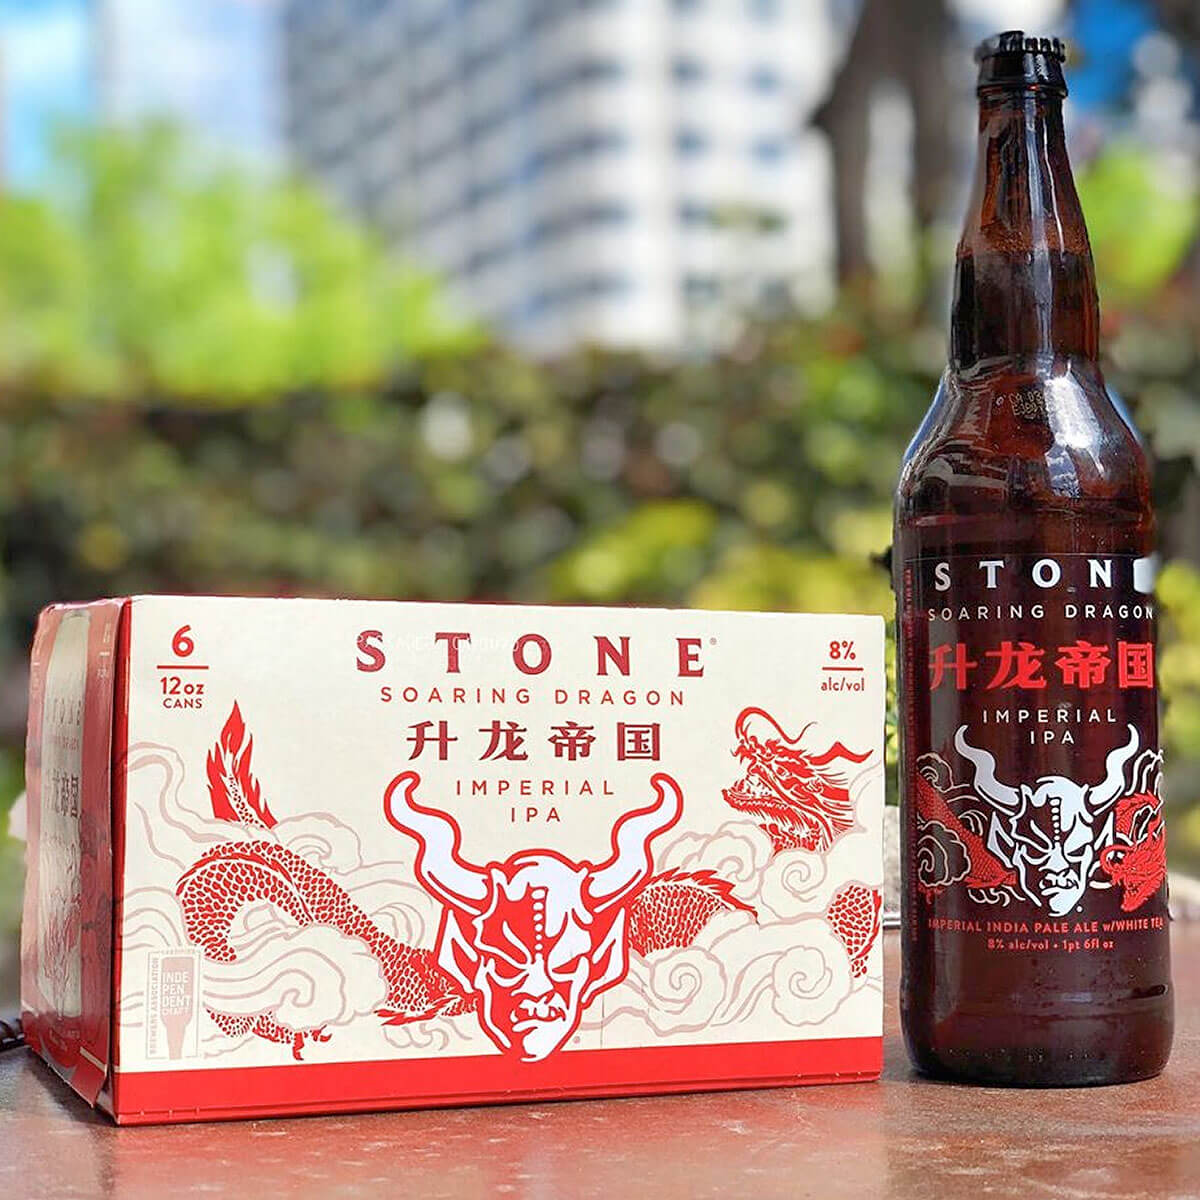 Stone Brewing has released the Stone Soaring Dragon Imperial IPA featuring a harmony of the delicate floral qualities of White Tea with Citra and Loral hops.